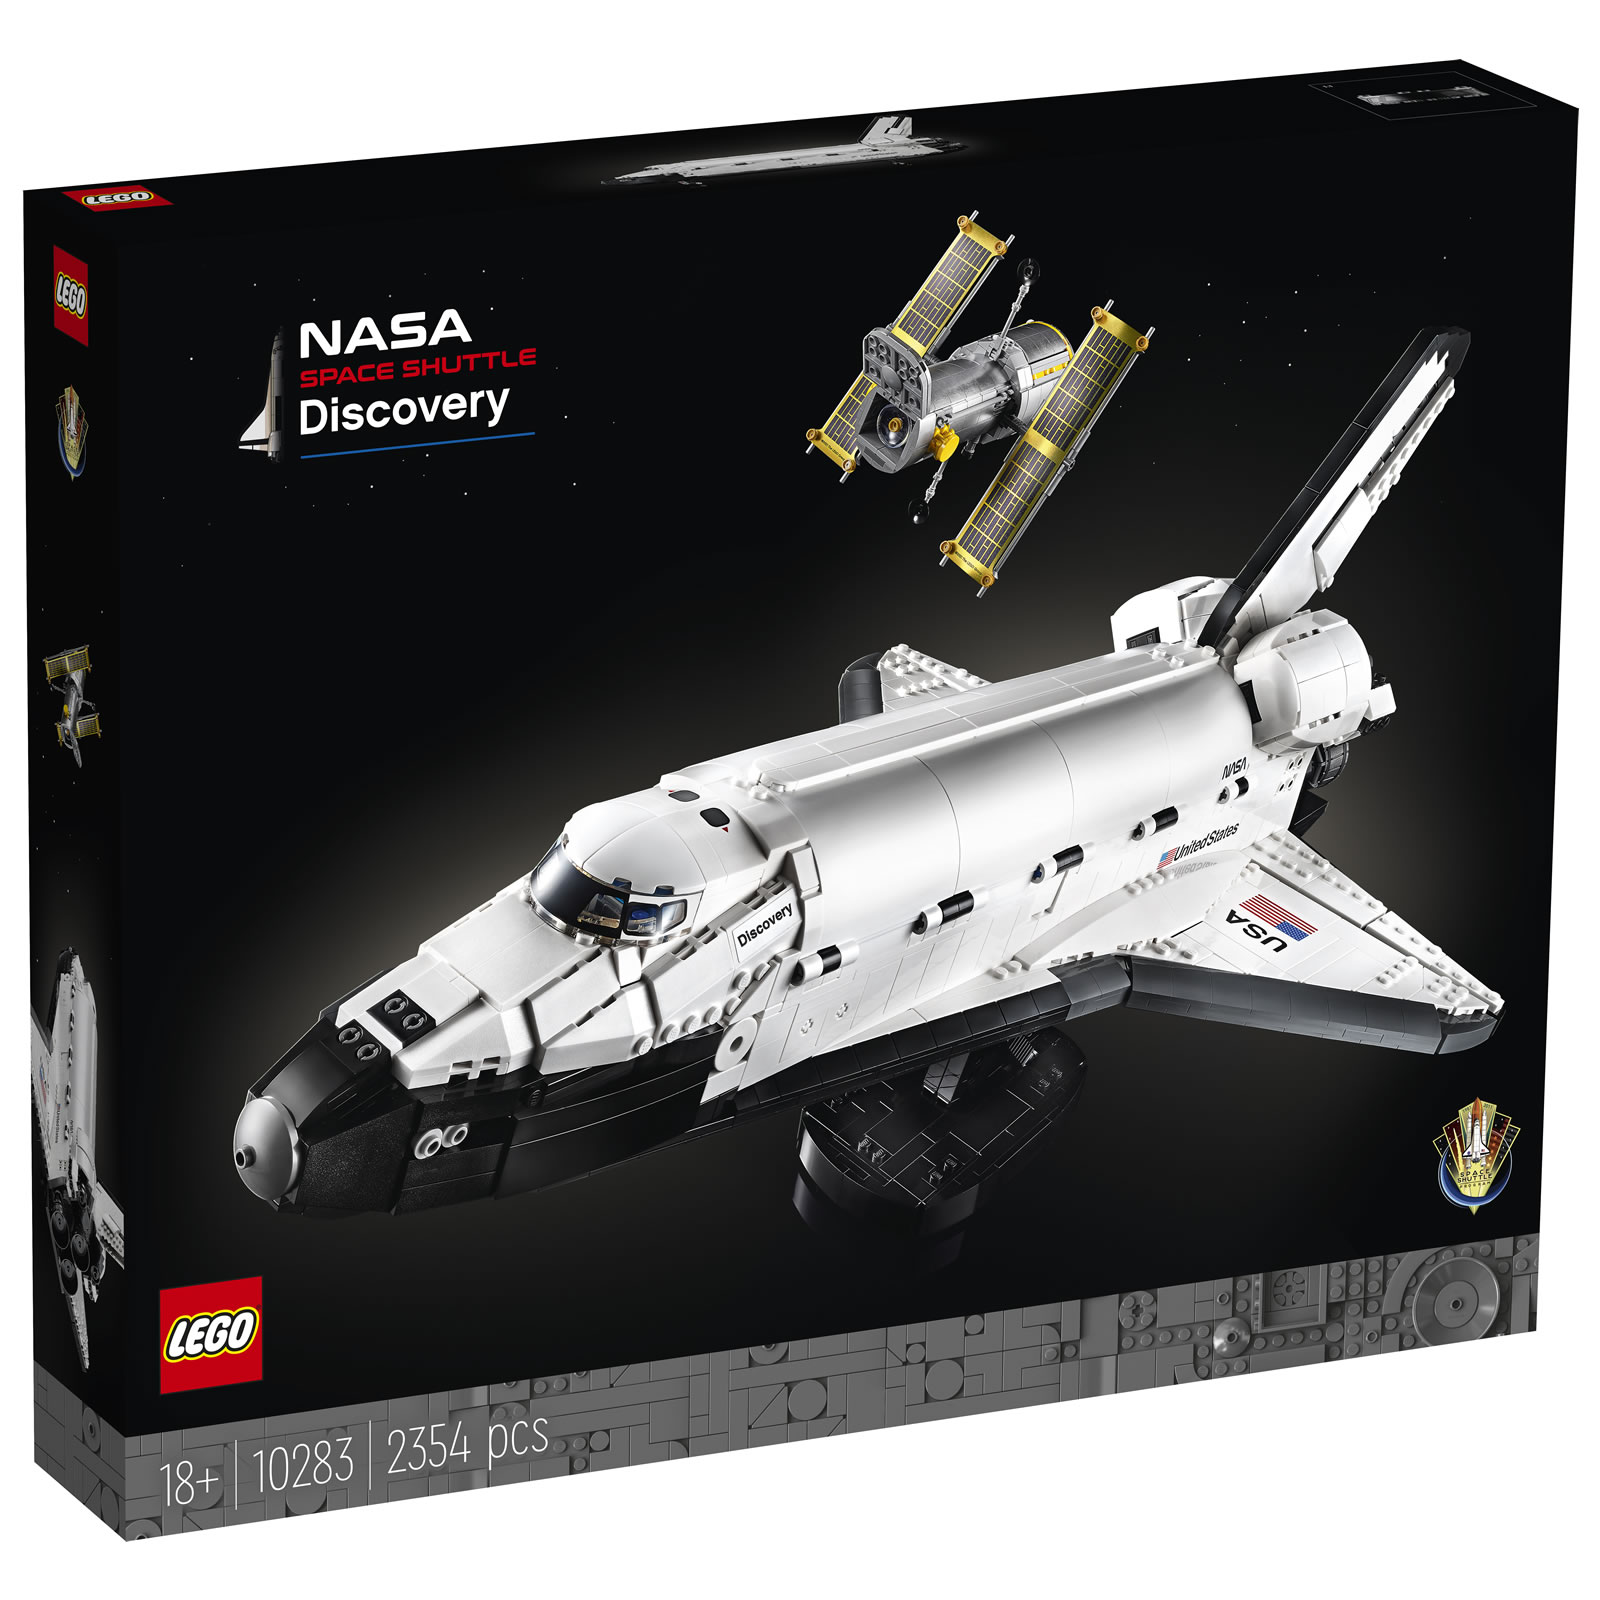 LEGO : Ze topik =) - Page 8 10283-lego-nasa-space-shuttle-discovery-box-front-1